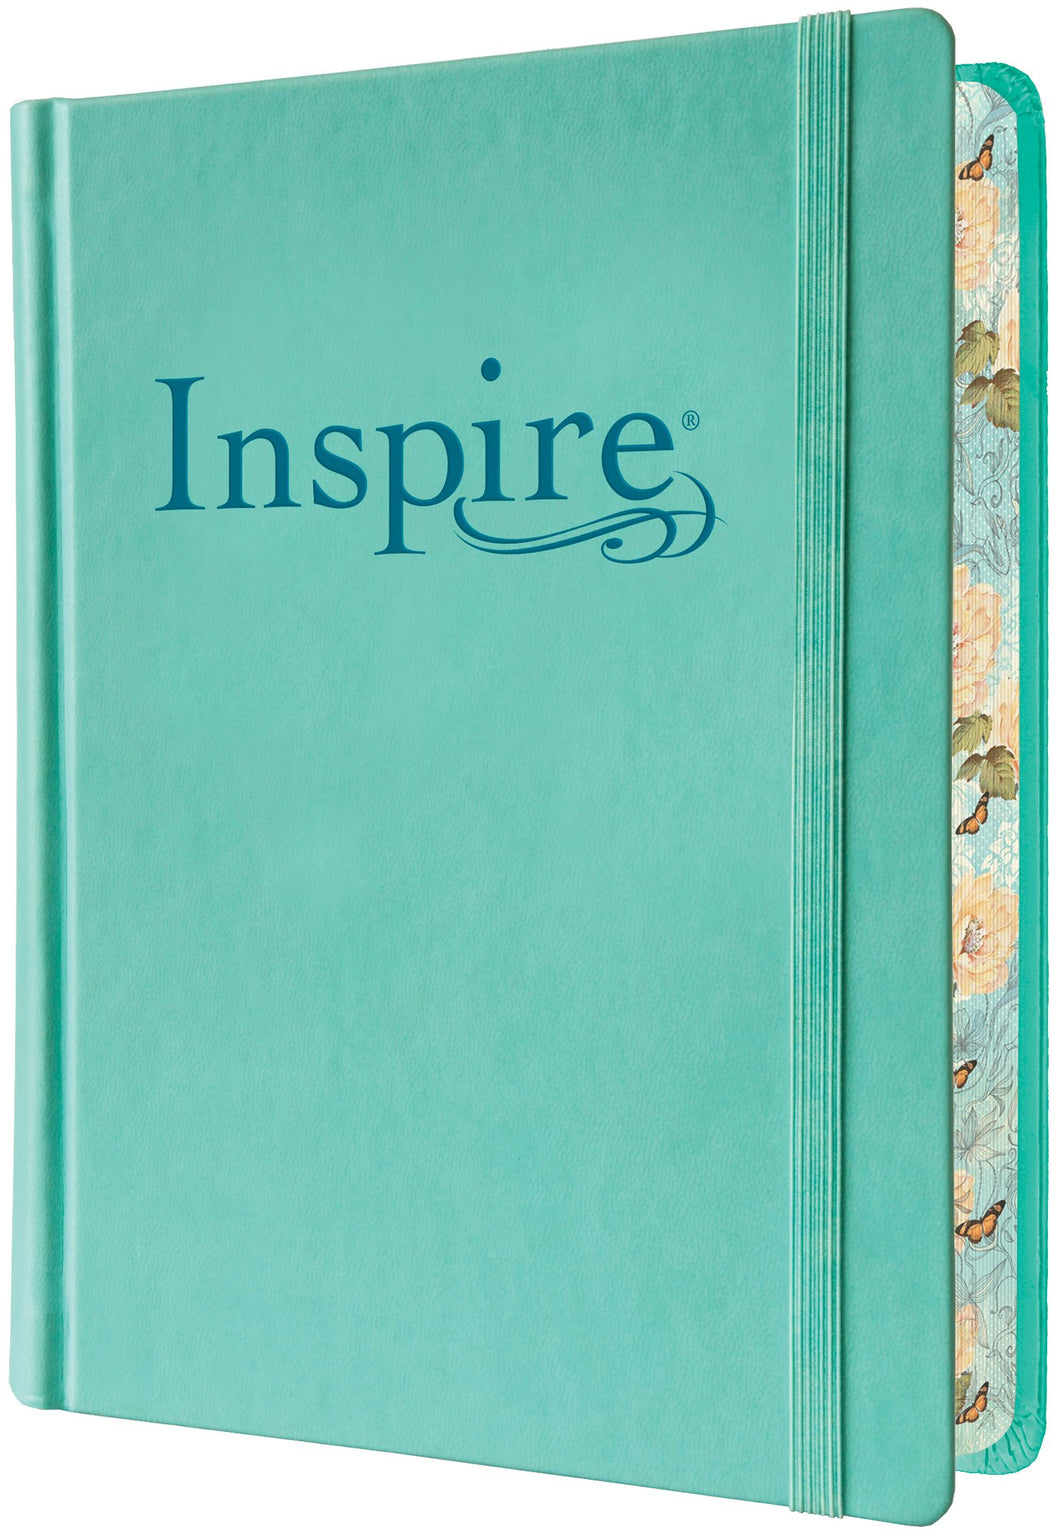 Inspire - NLT Bible for Creative Journaling